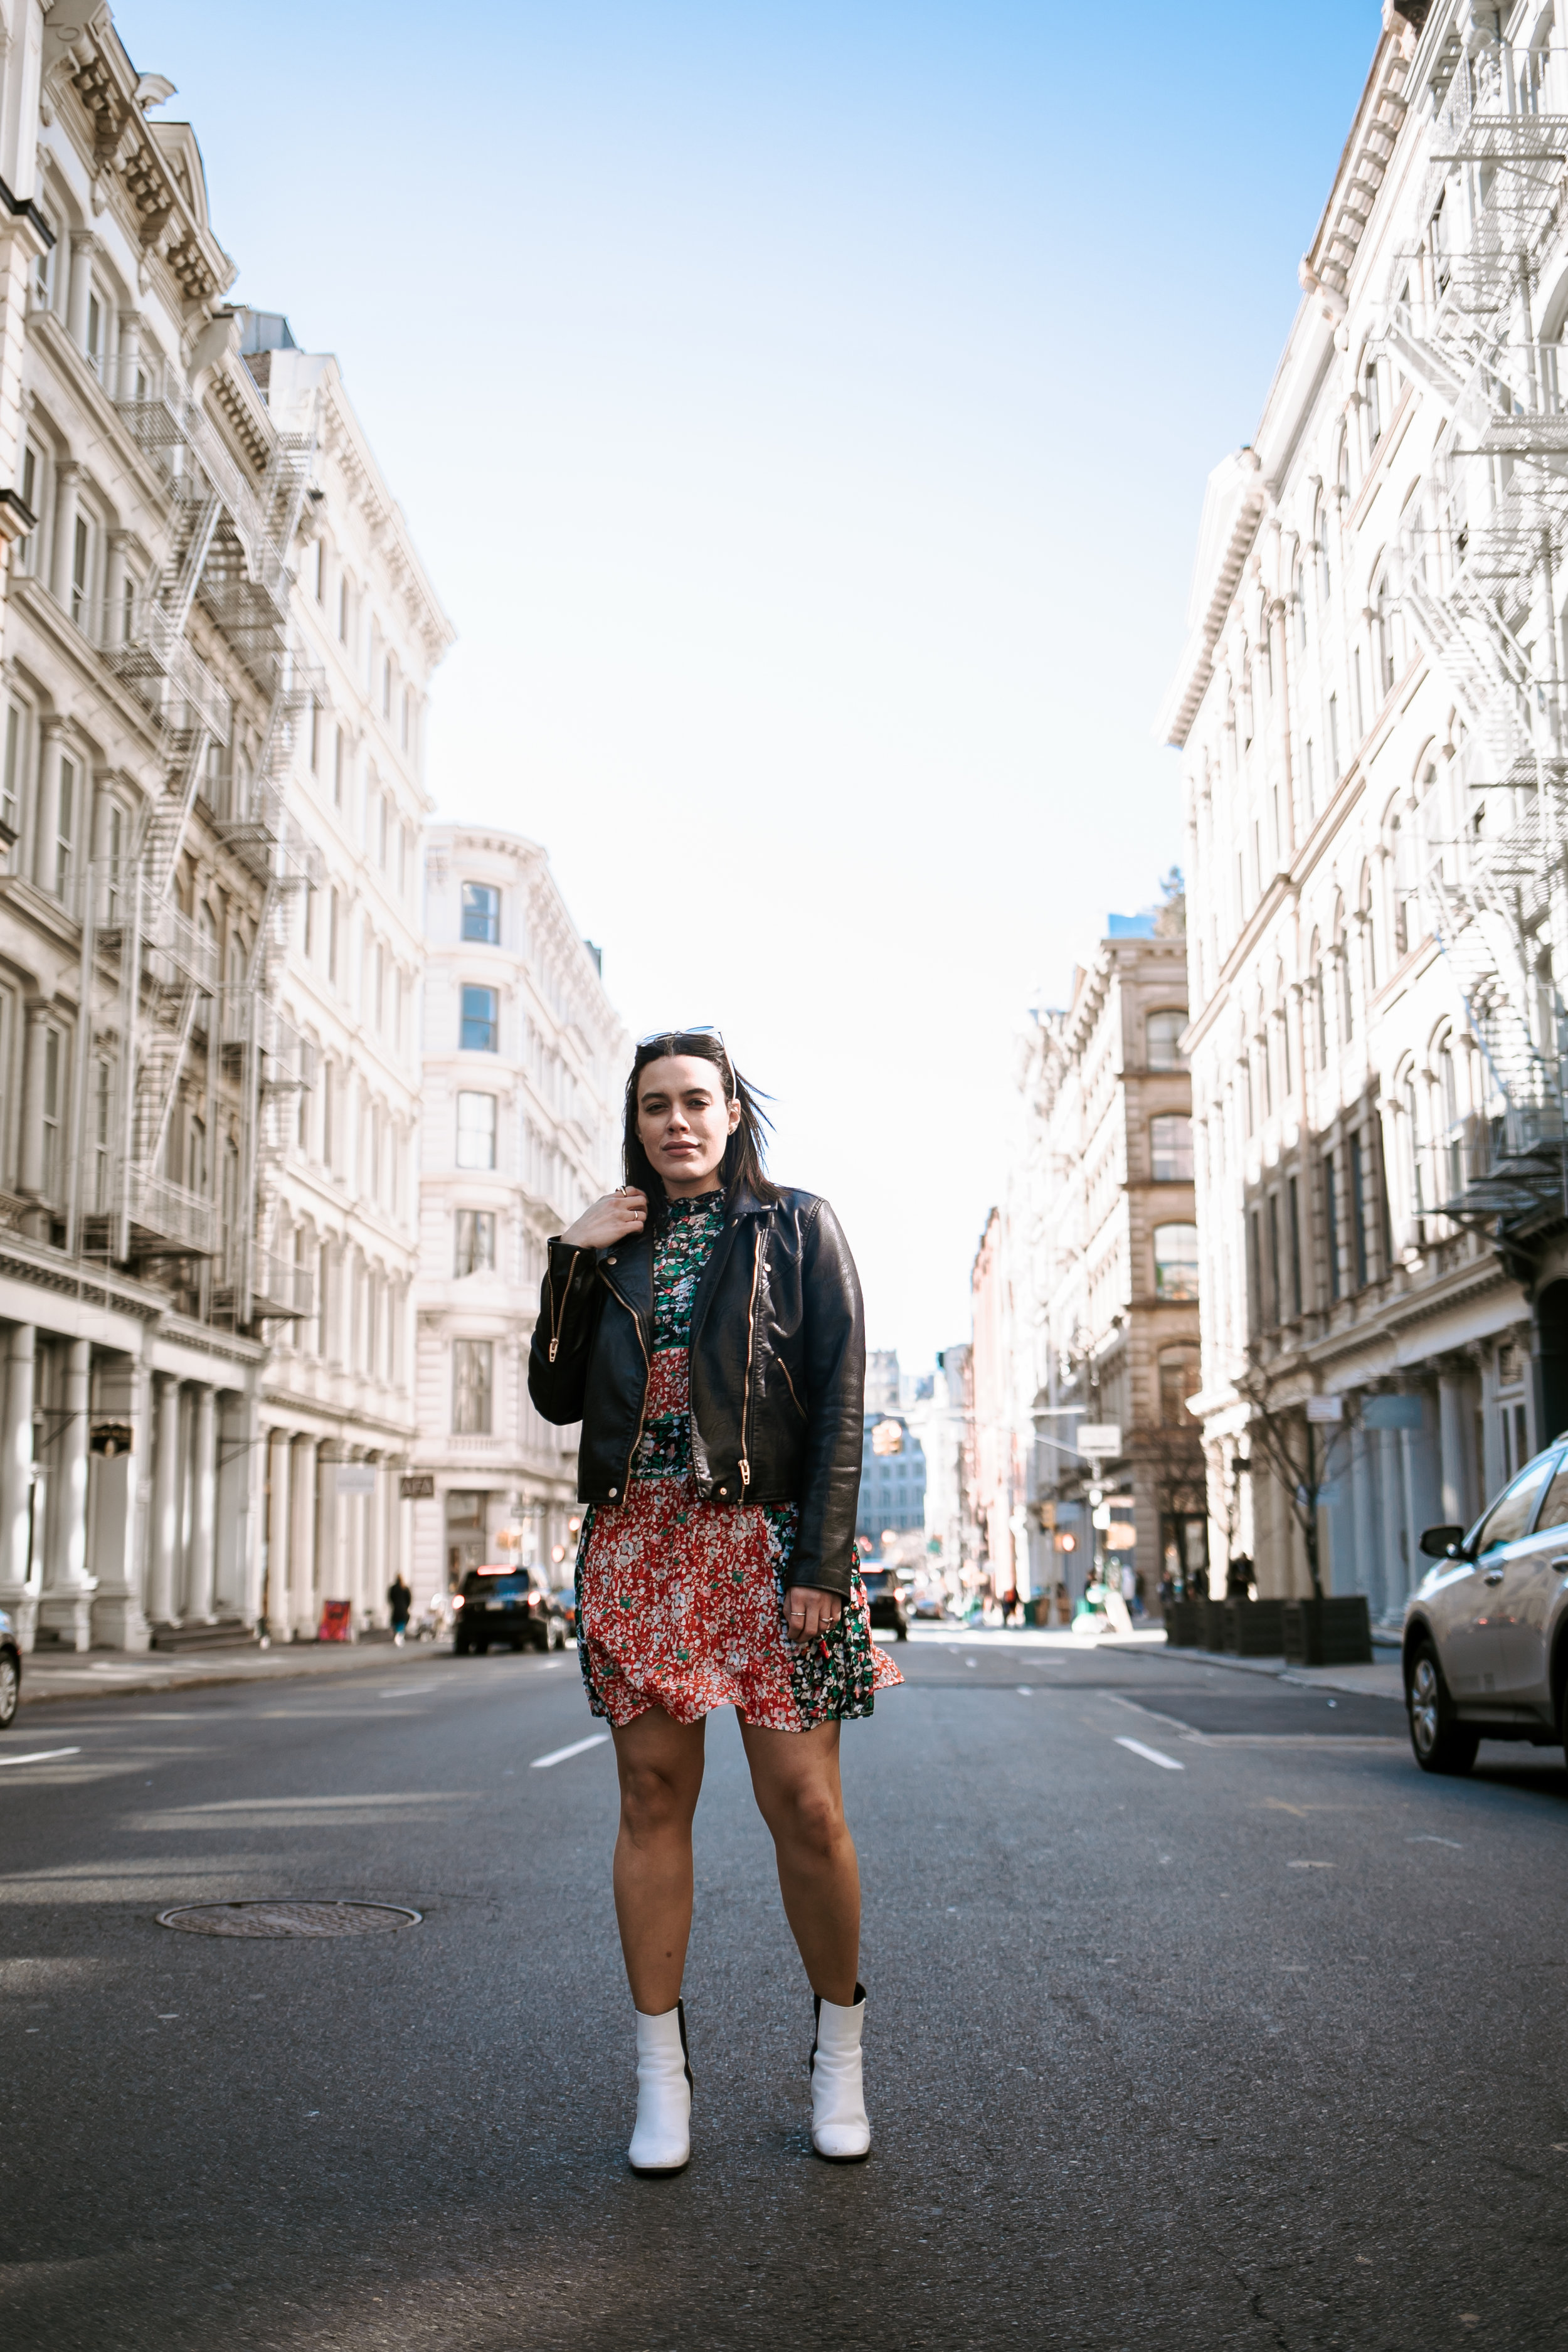 how-to-style-patchwork-floral-mini-dress-latina-new-york-city-fashion-blogger-style-operator-spring-fashion.jpg